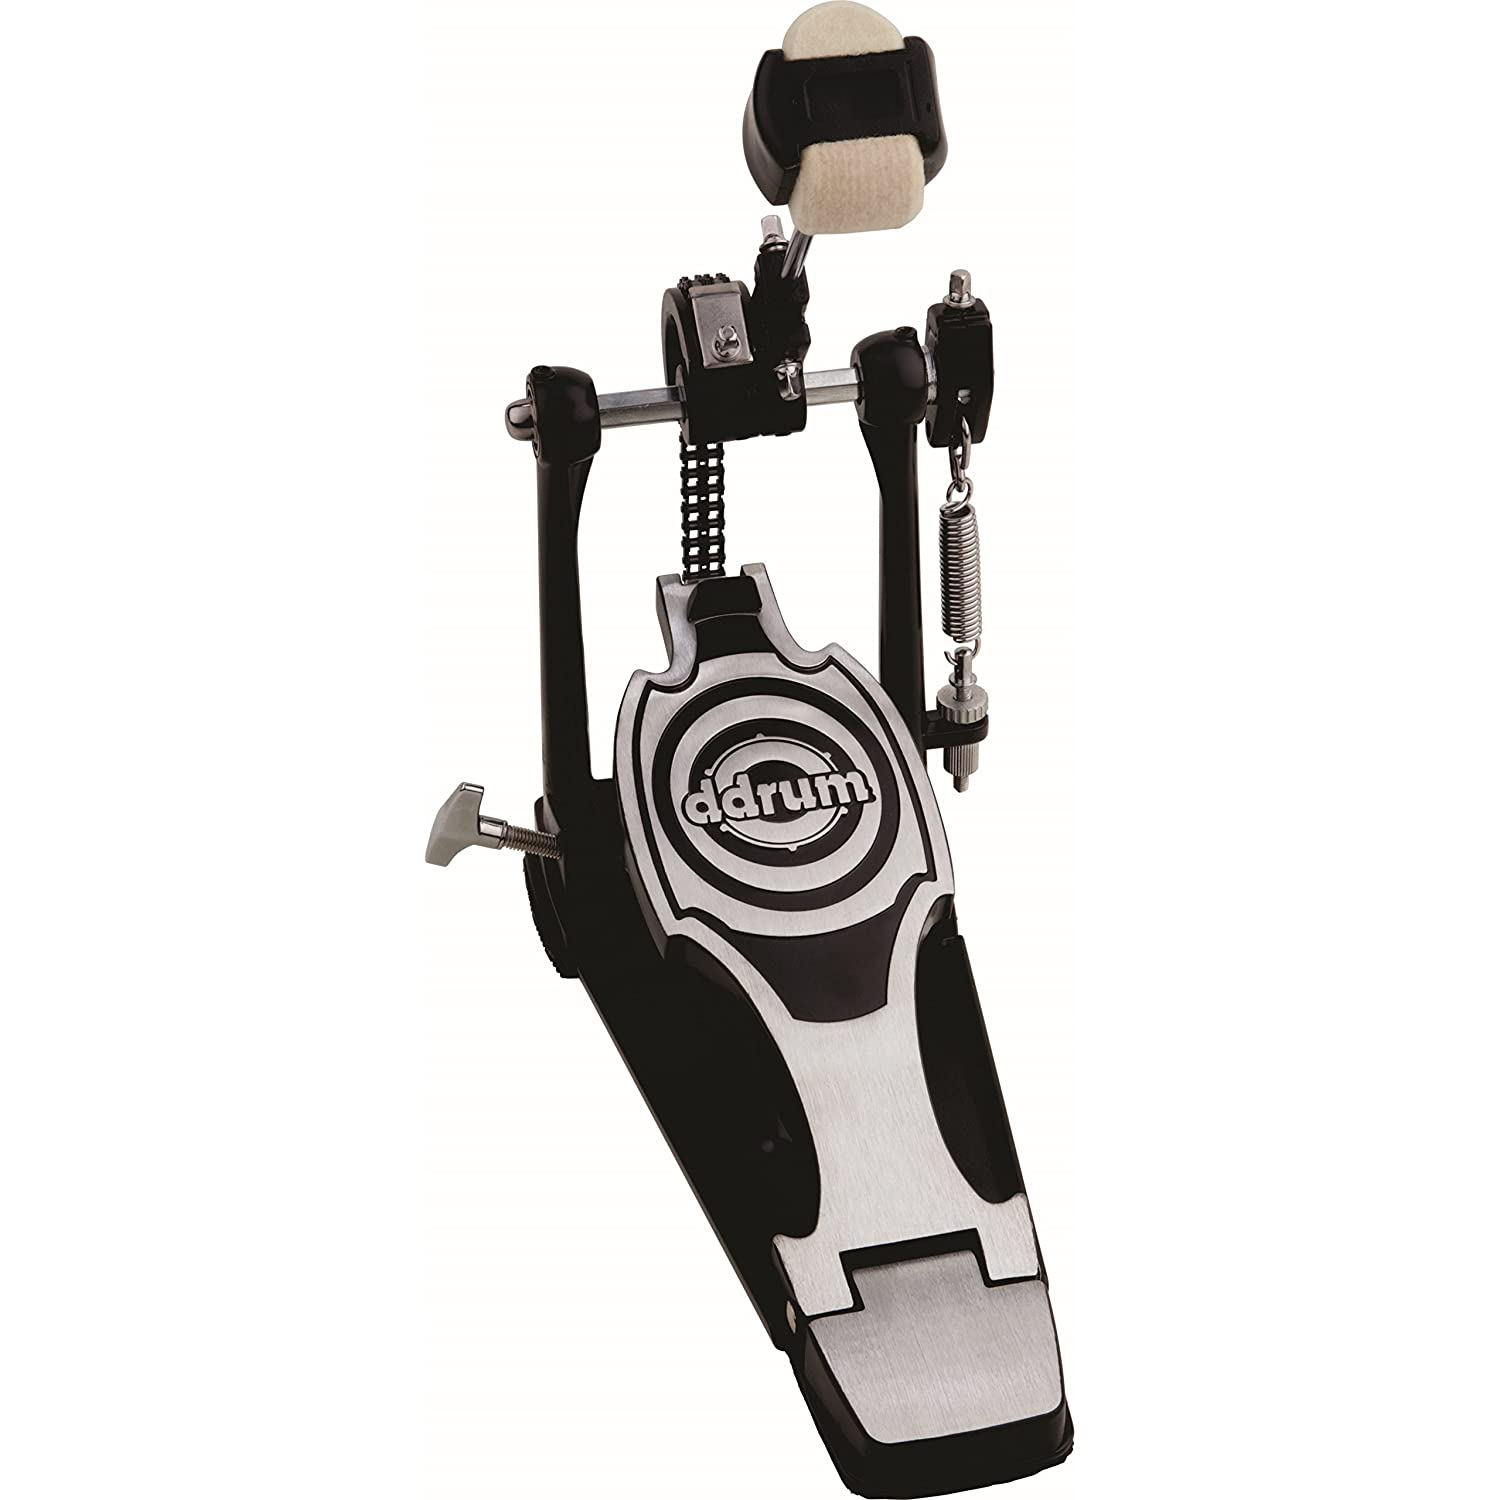 DDrum RX Series RXP Bass Drum Pedal Percussion Holder